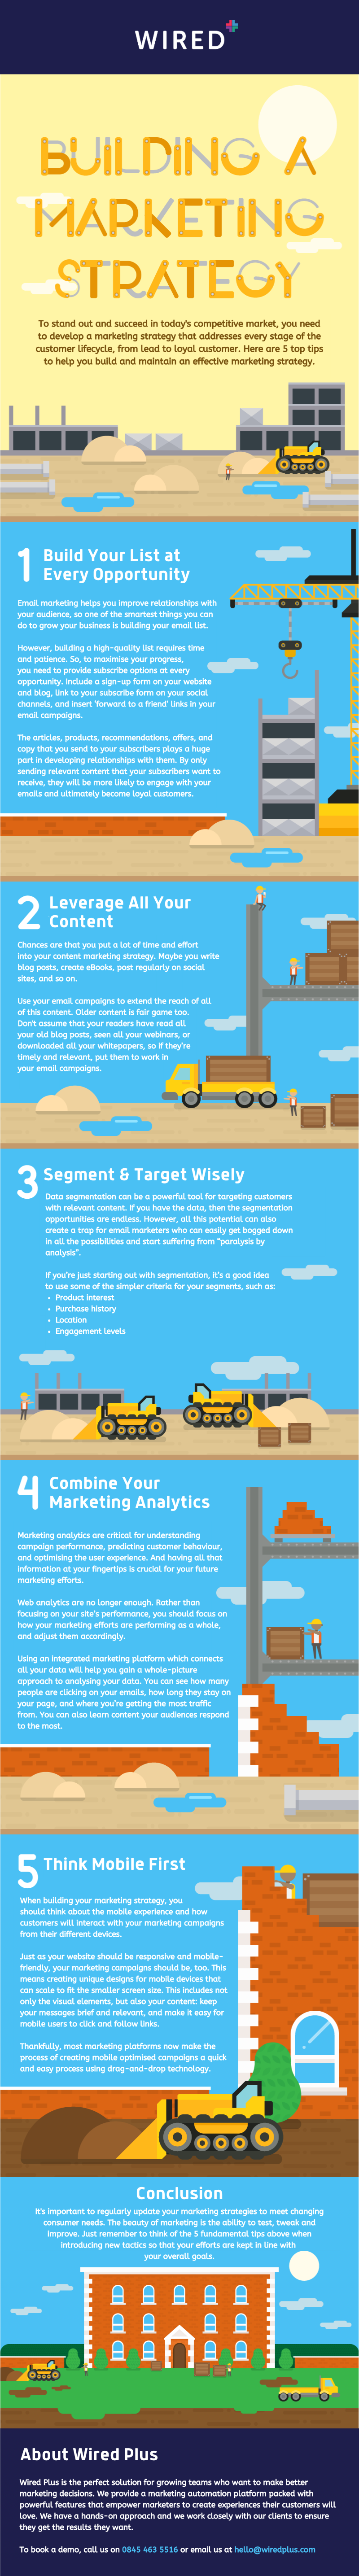 How to Build an Effective Marketing Strategy infographic